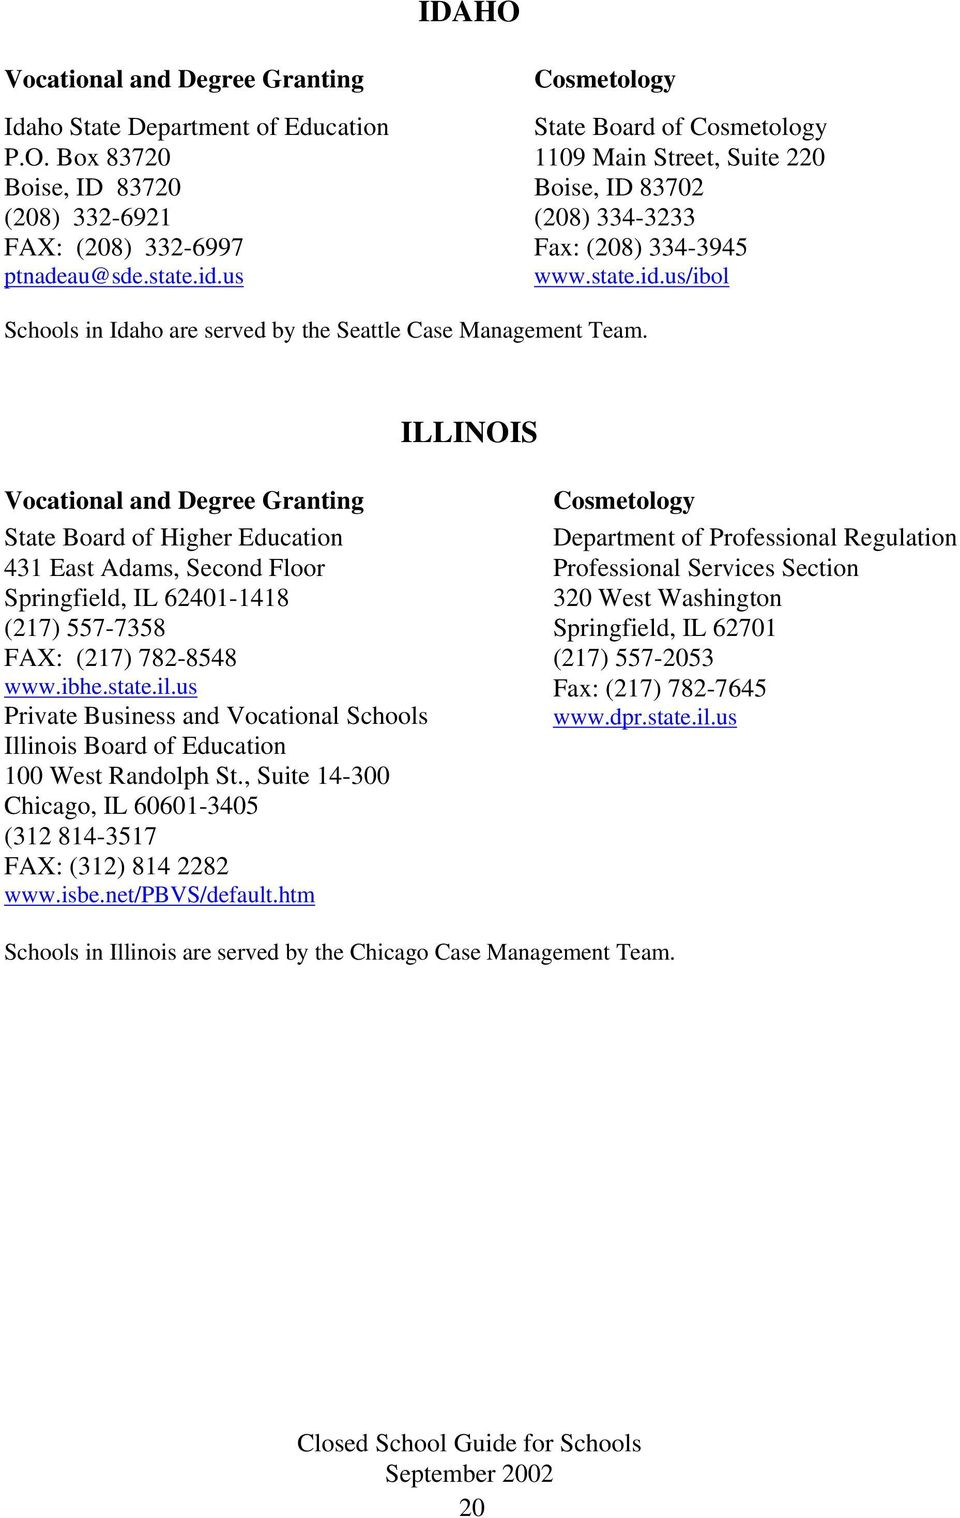 ILLINOIS State Board of Higher Education 431 East Adams, Second Floor Springfield, IL 62401-1418 (217) 557-7358 FAX: (217) 782-8548 www.ibhe.state.il.